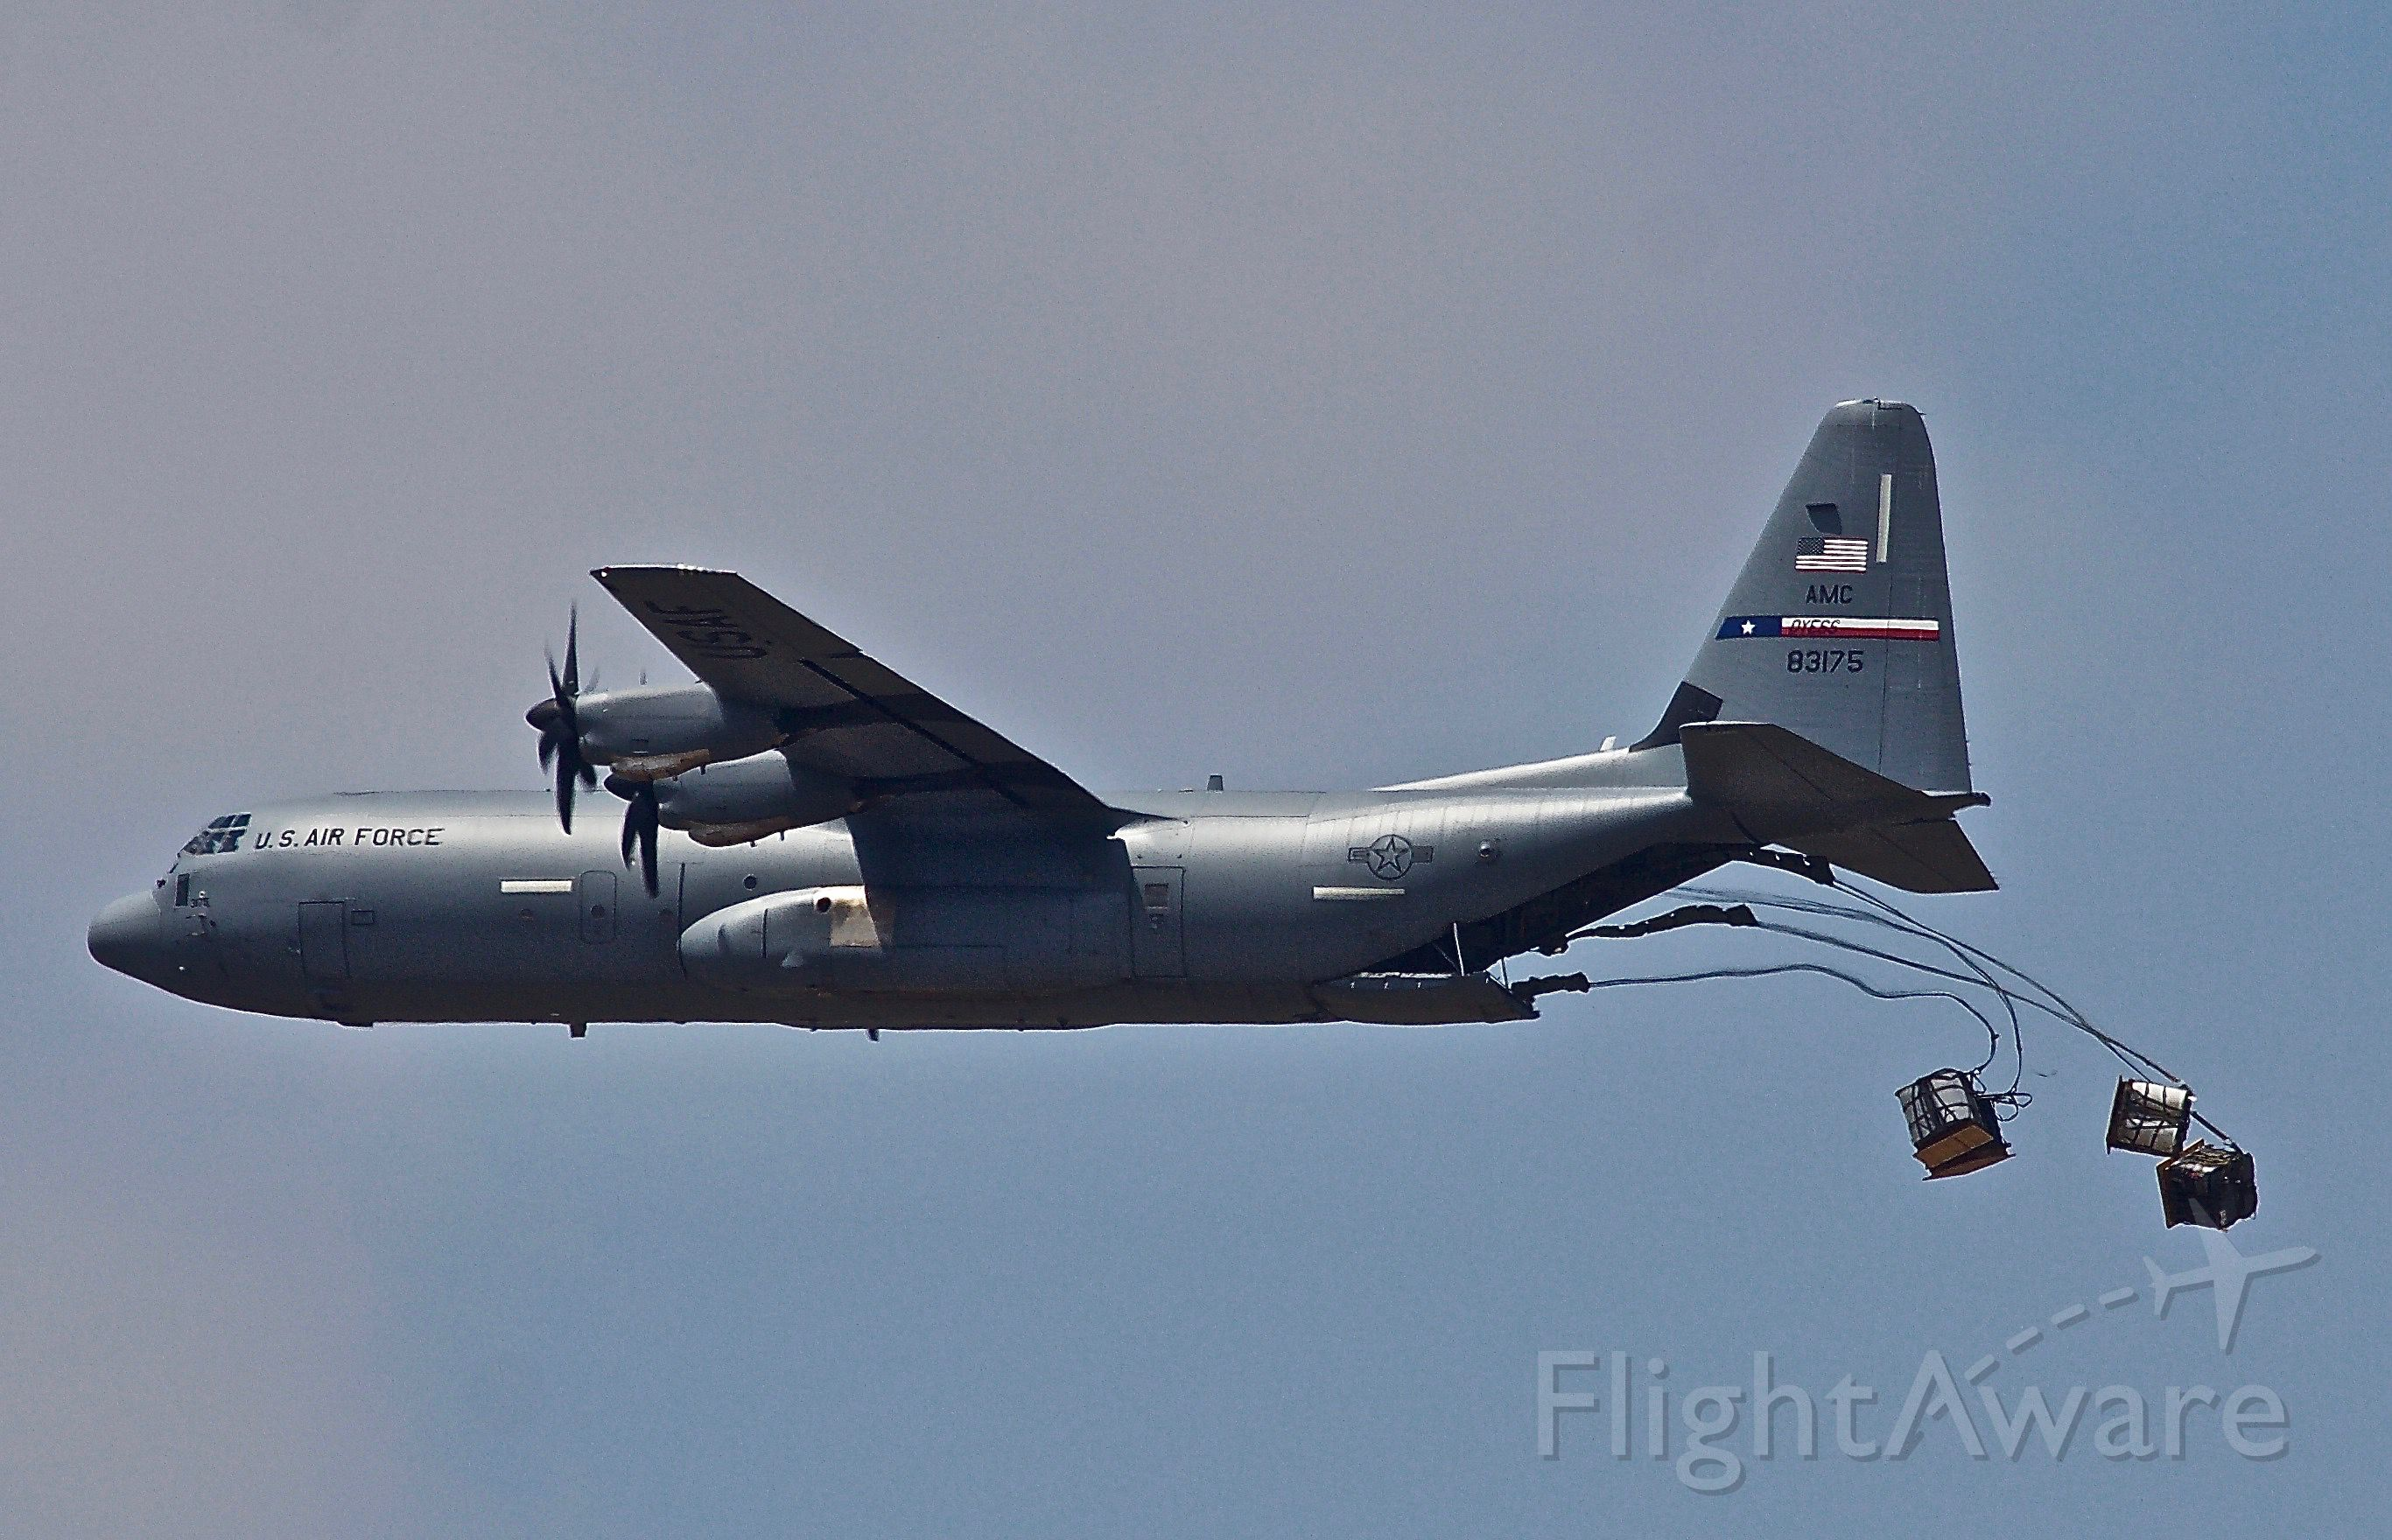 """Lockheed C-130 Hercules (08-3175) - The home town logistics team demonstrating their ability to accurately drop supplies to combat troops at the 2018 Dyess Big Country Air & Space Expo (please view in """"Full"""" for best image quality)"""